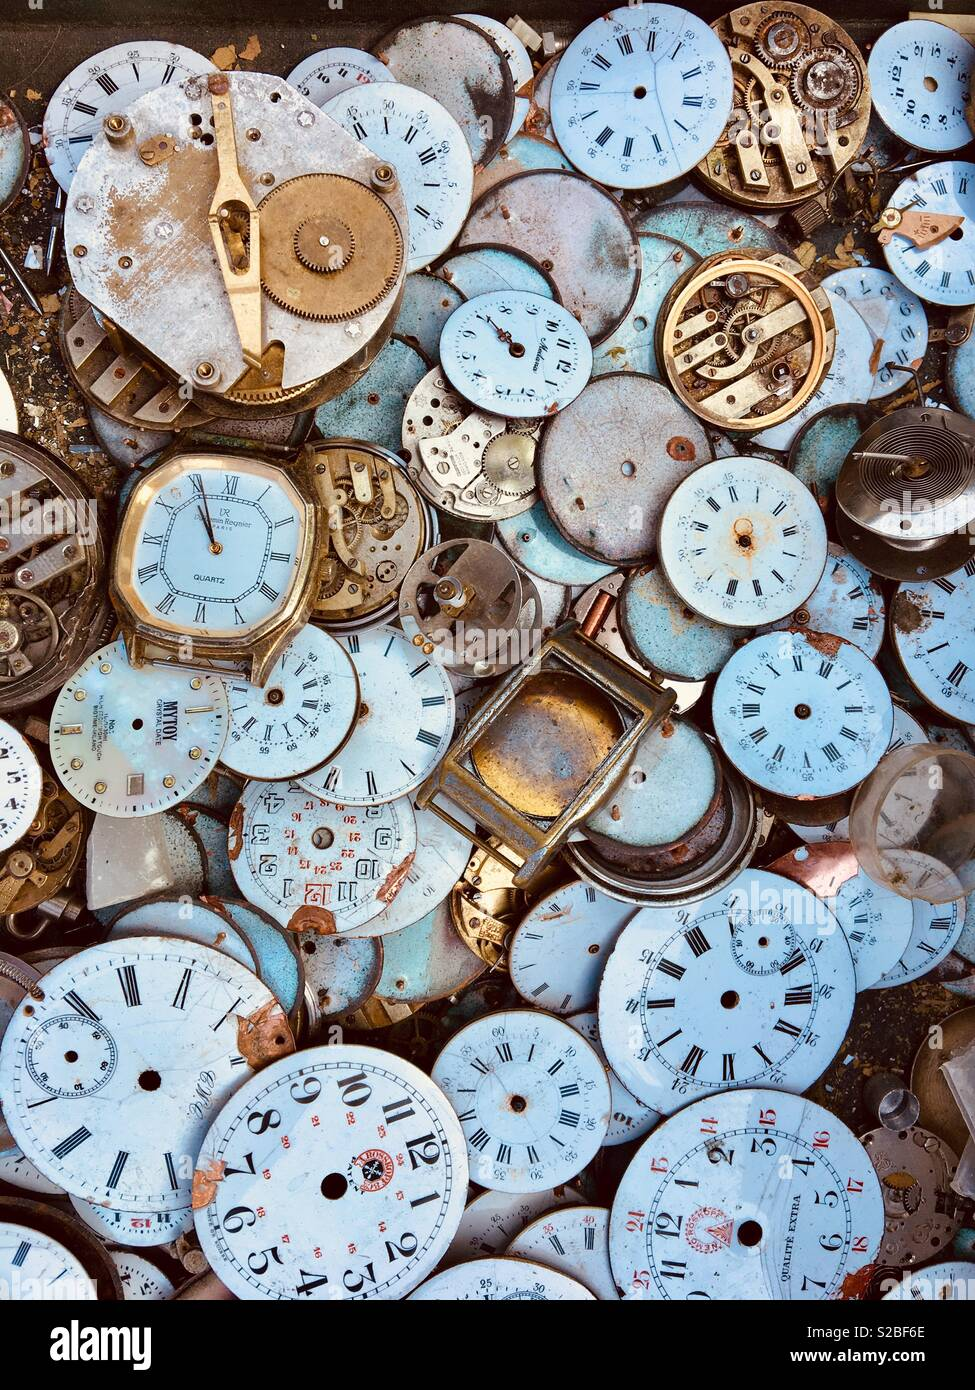 Timepieces - Stock Image